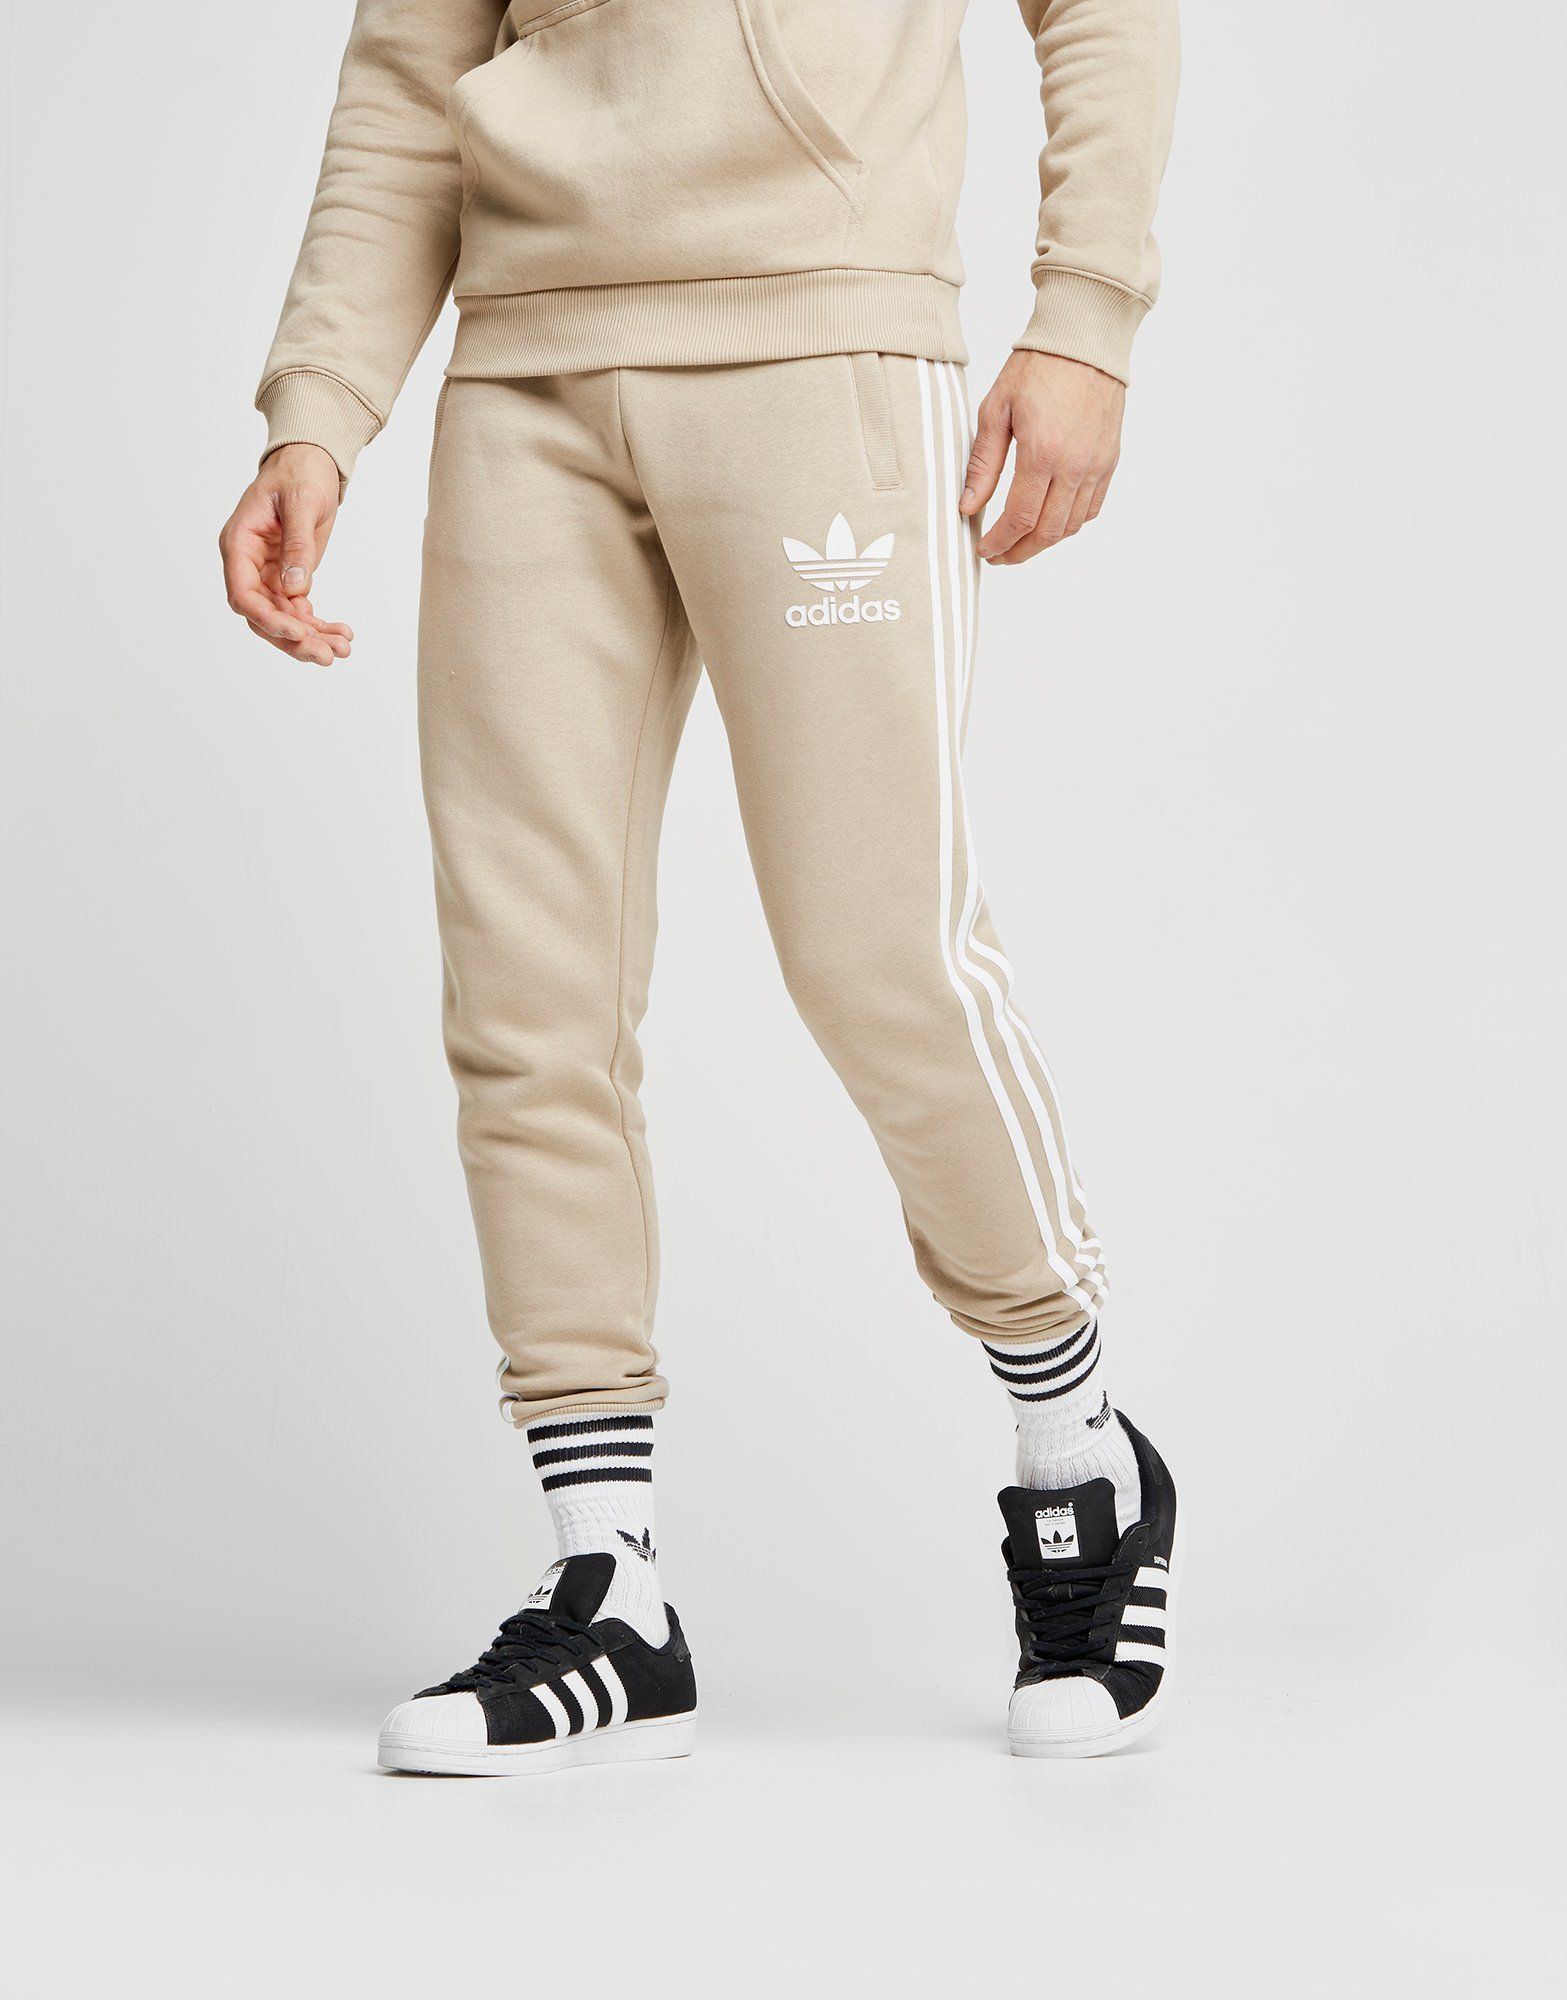 ensemble homme adidas original